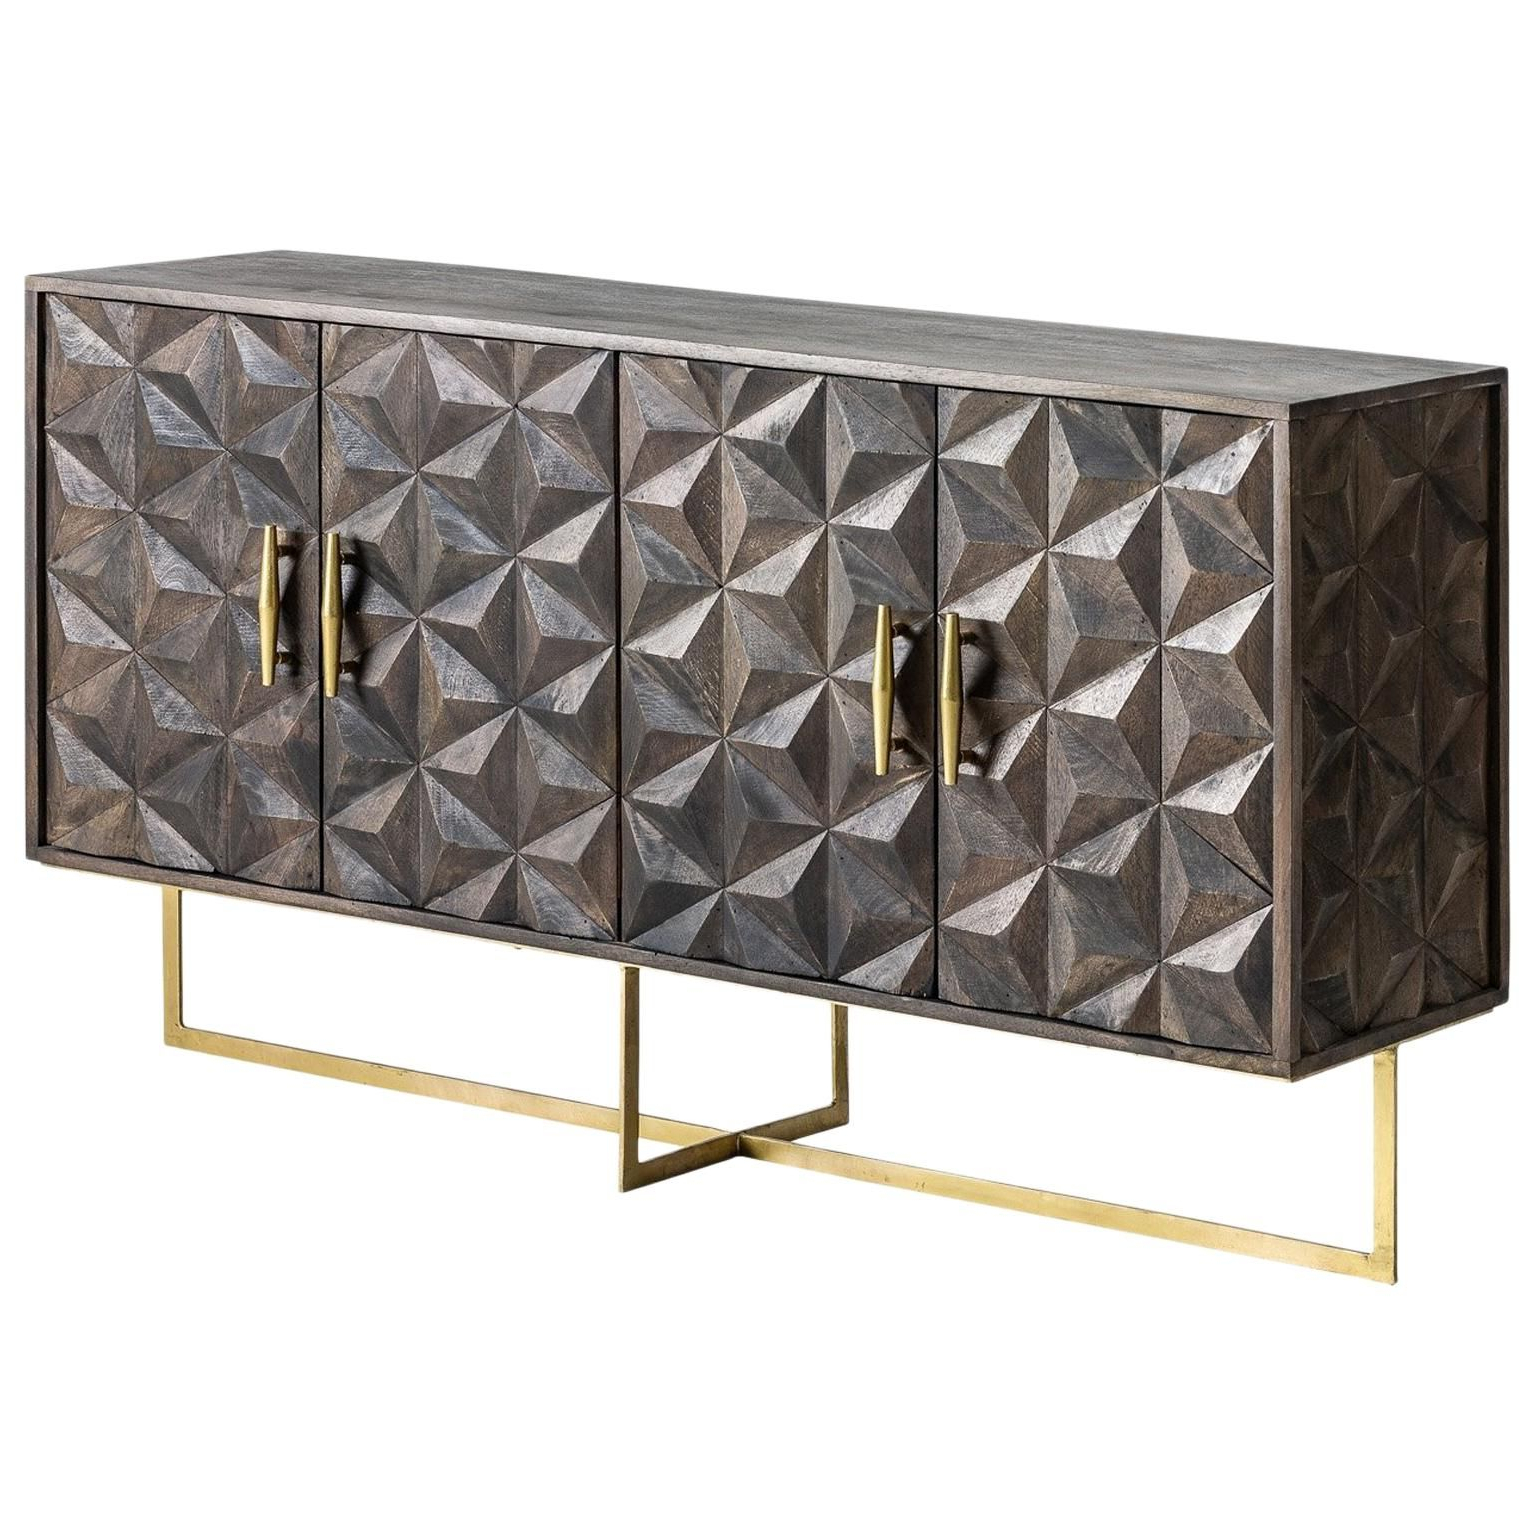 Brutalist Design Wooden And Gilded Metal Sideboard In 2019 Pertaining To Strokes And Waves Credenzas (View 16 of 20)